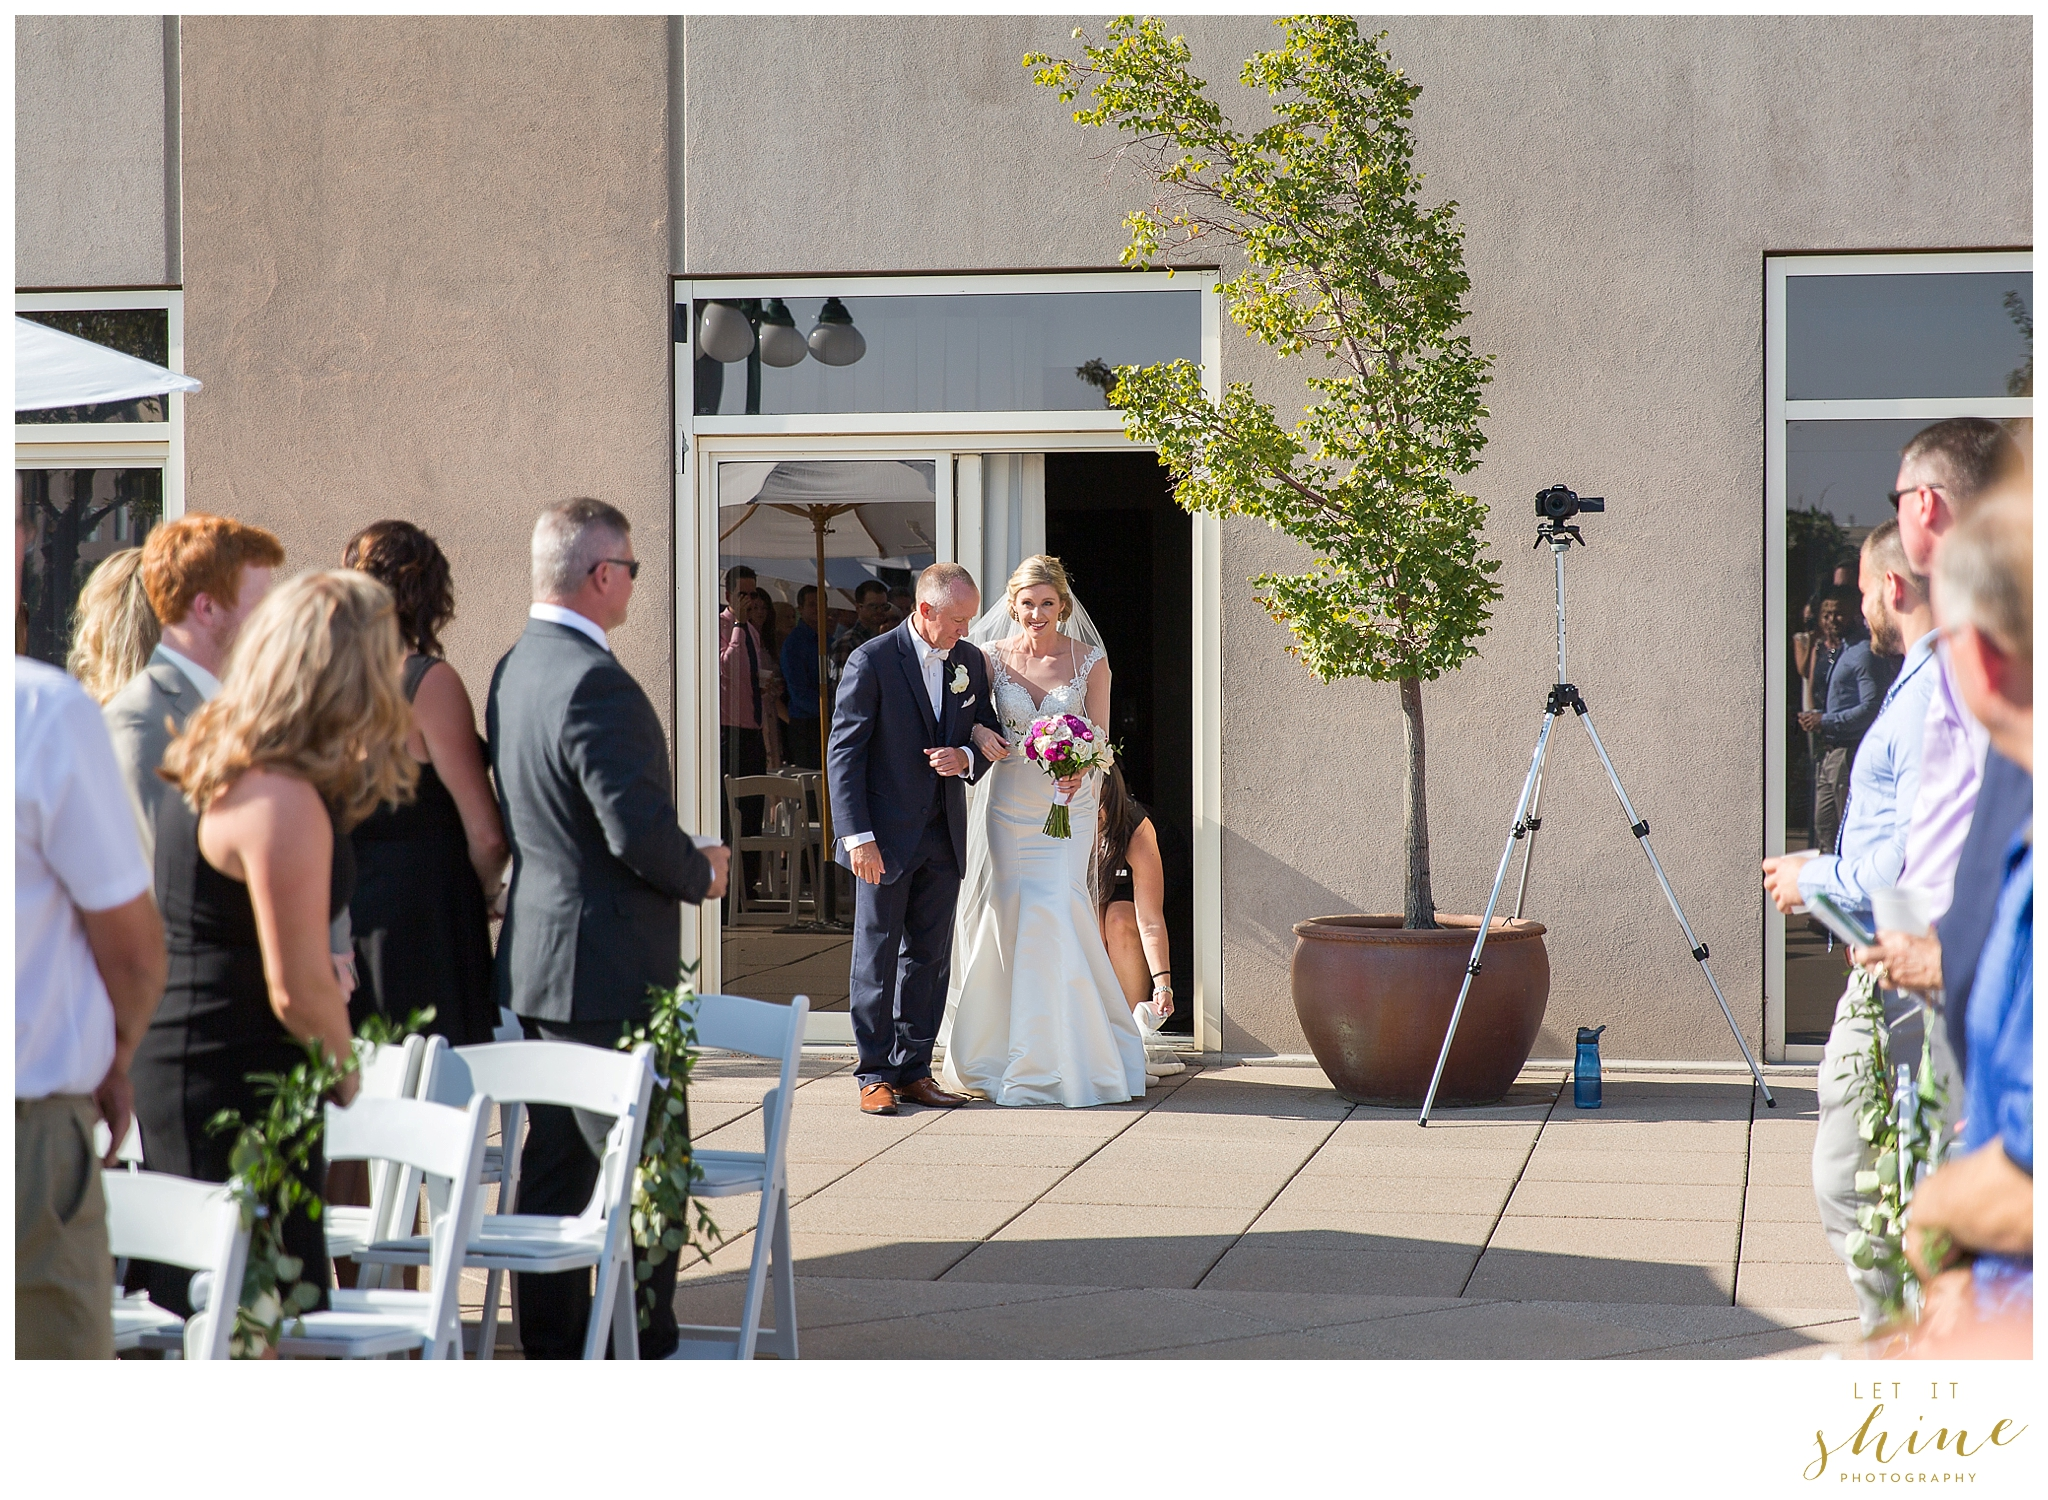 The Grove Hotel Boise Wedding 2017 Let it Shine Photography-0274.jpg